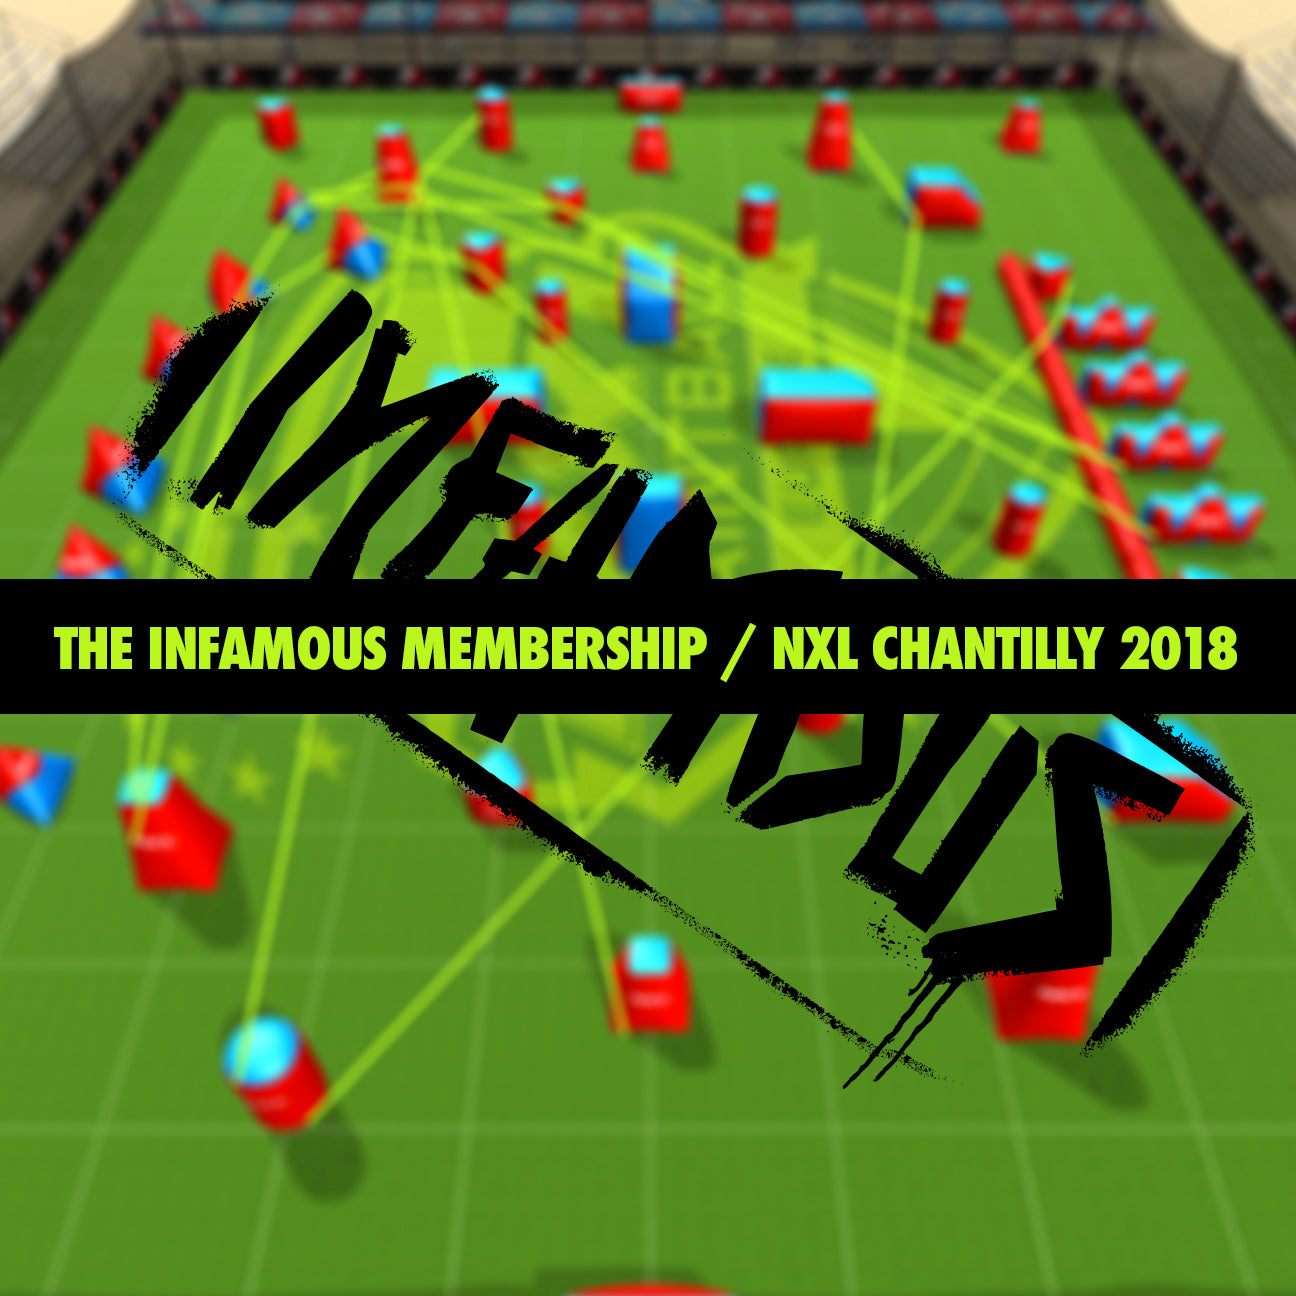 nxl chantilly 2018 infamous paintball